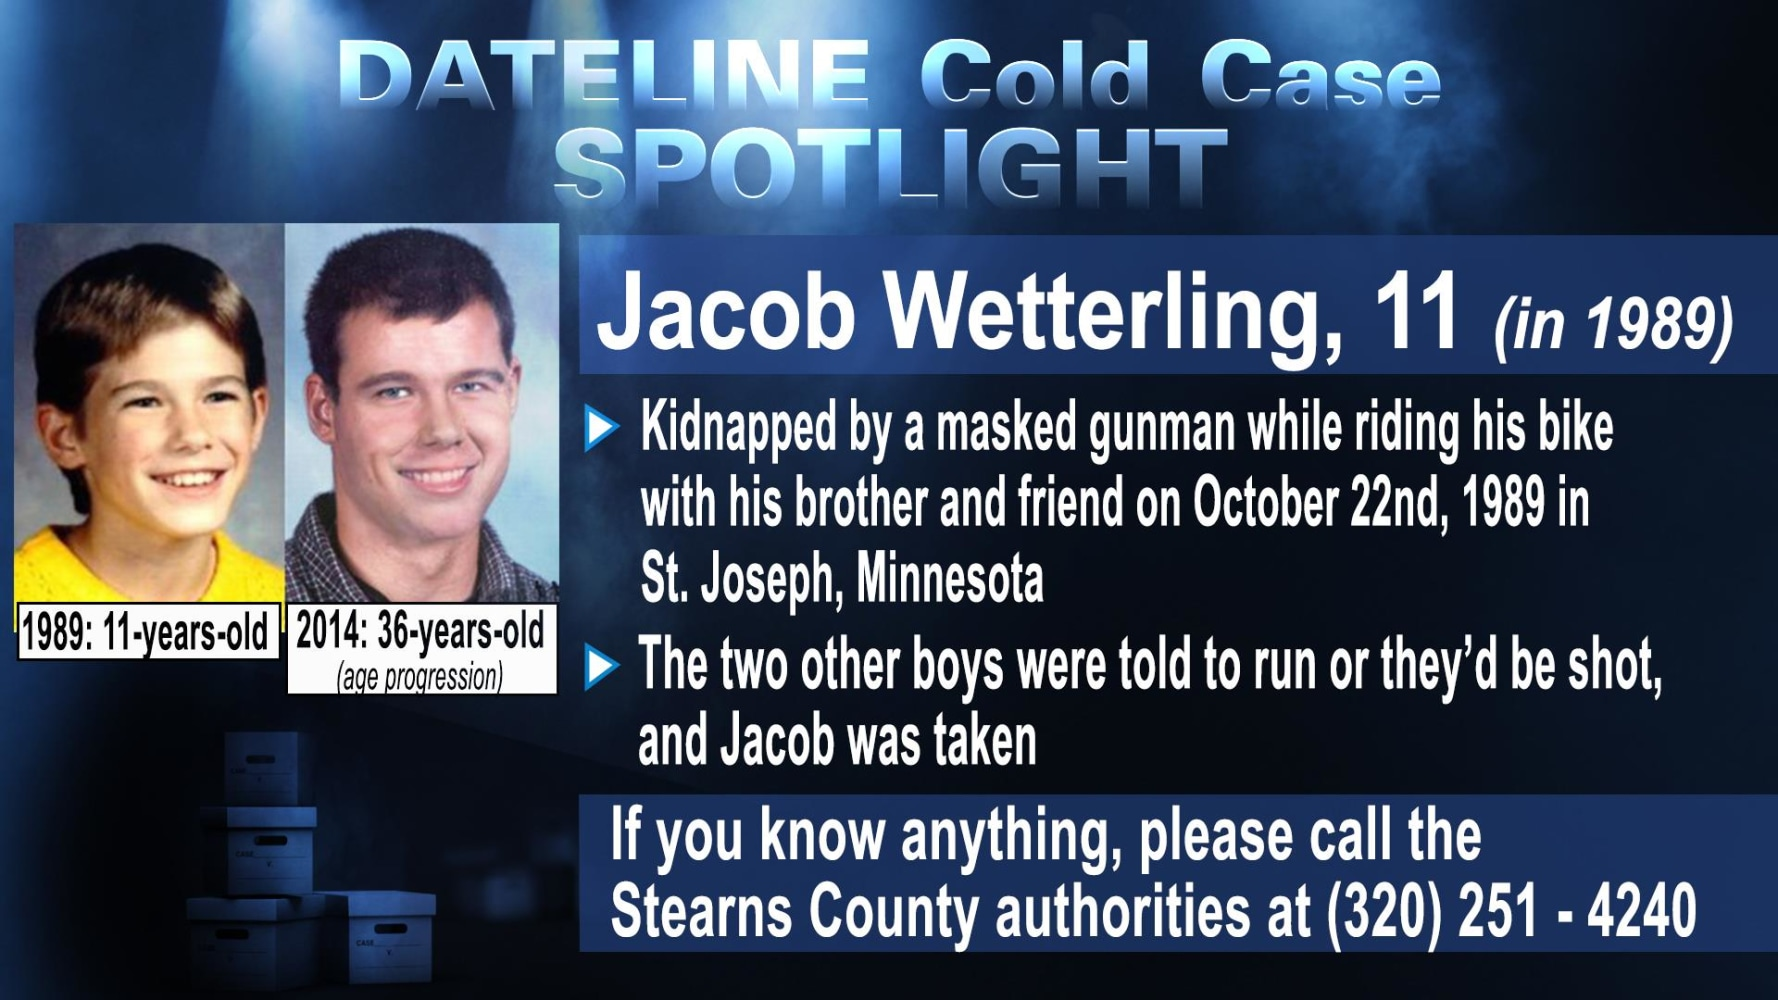 IMAGE: Jacon Wetterling Missing Poster  Make Missing Poster